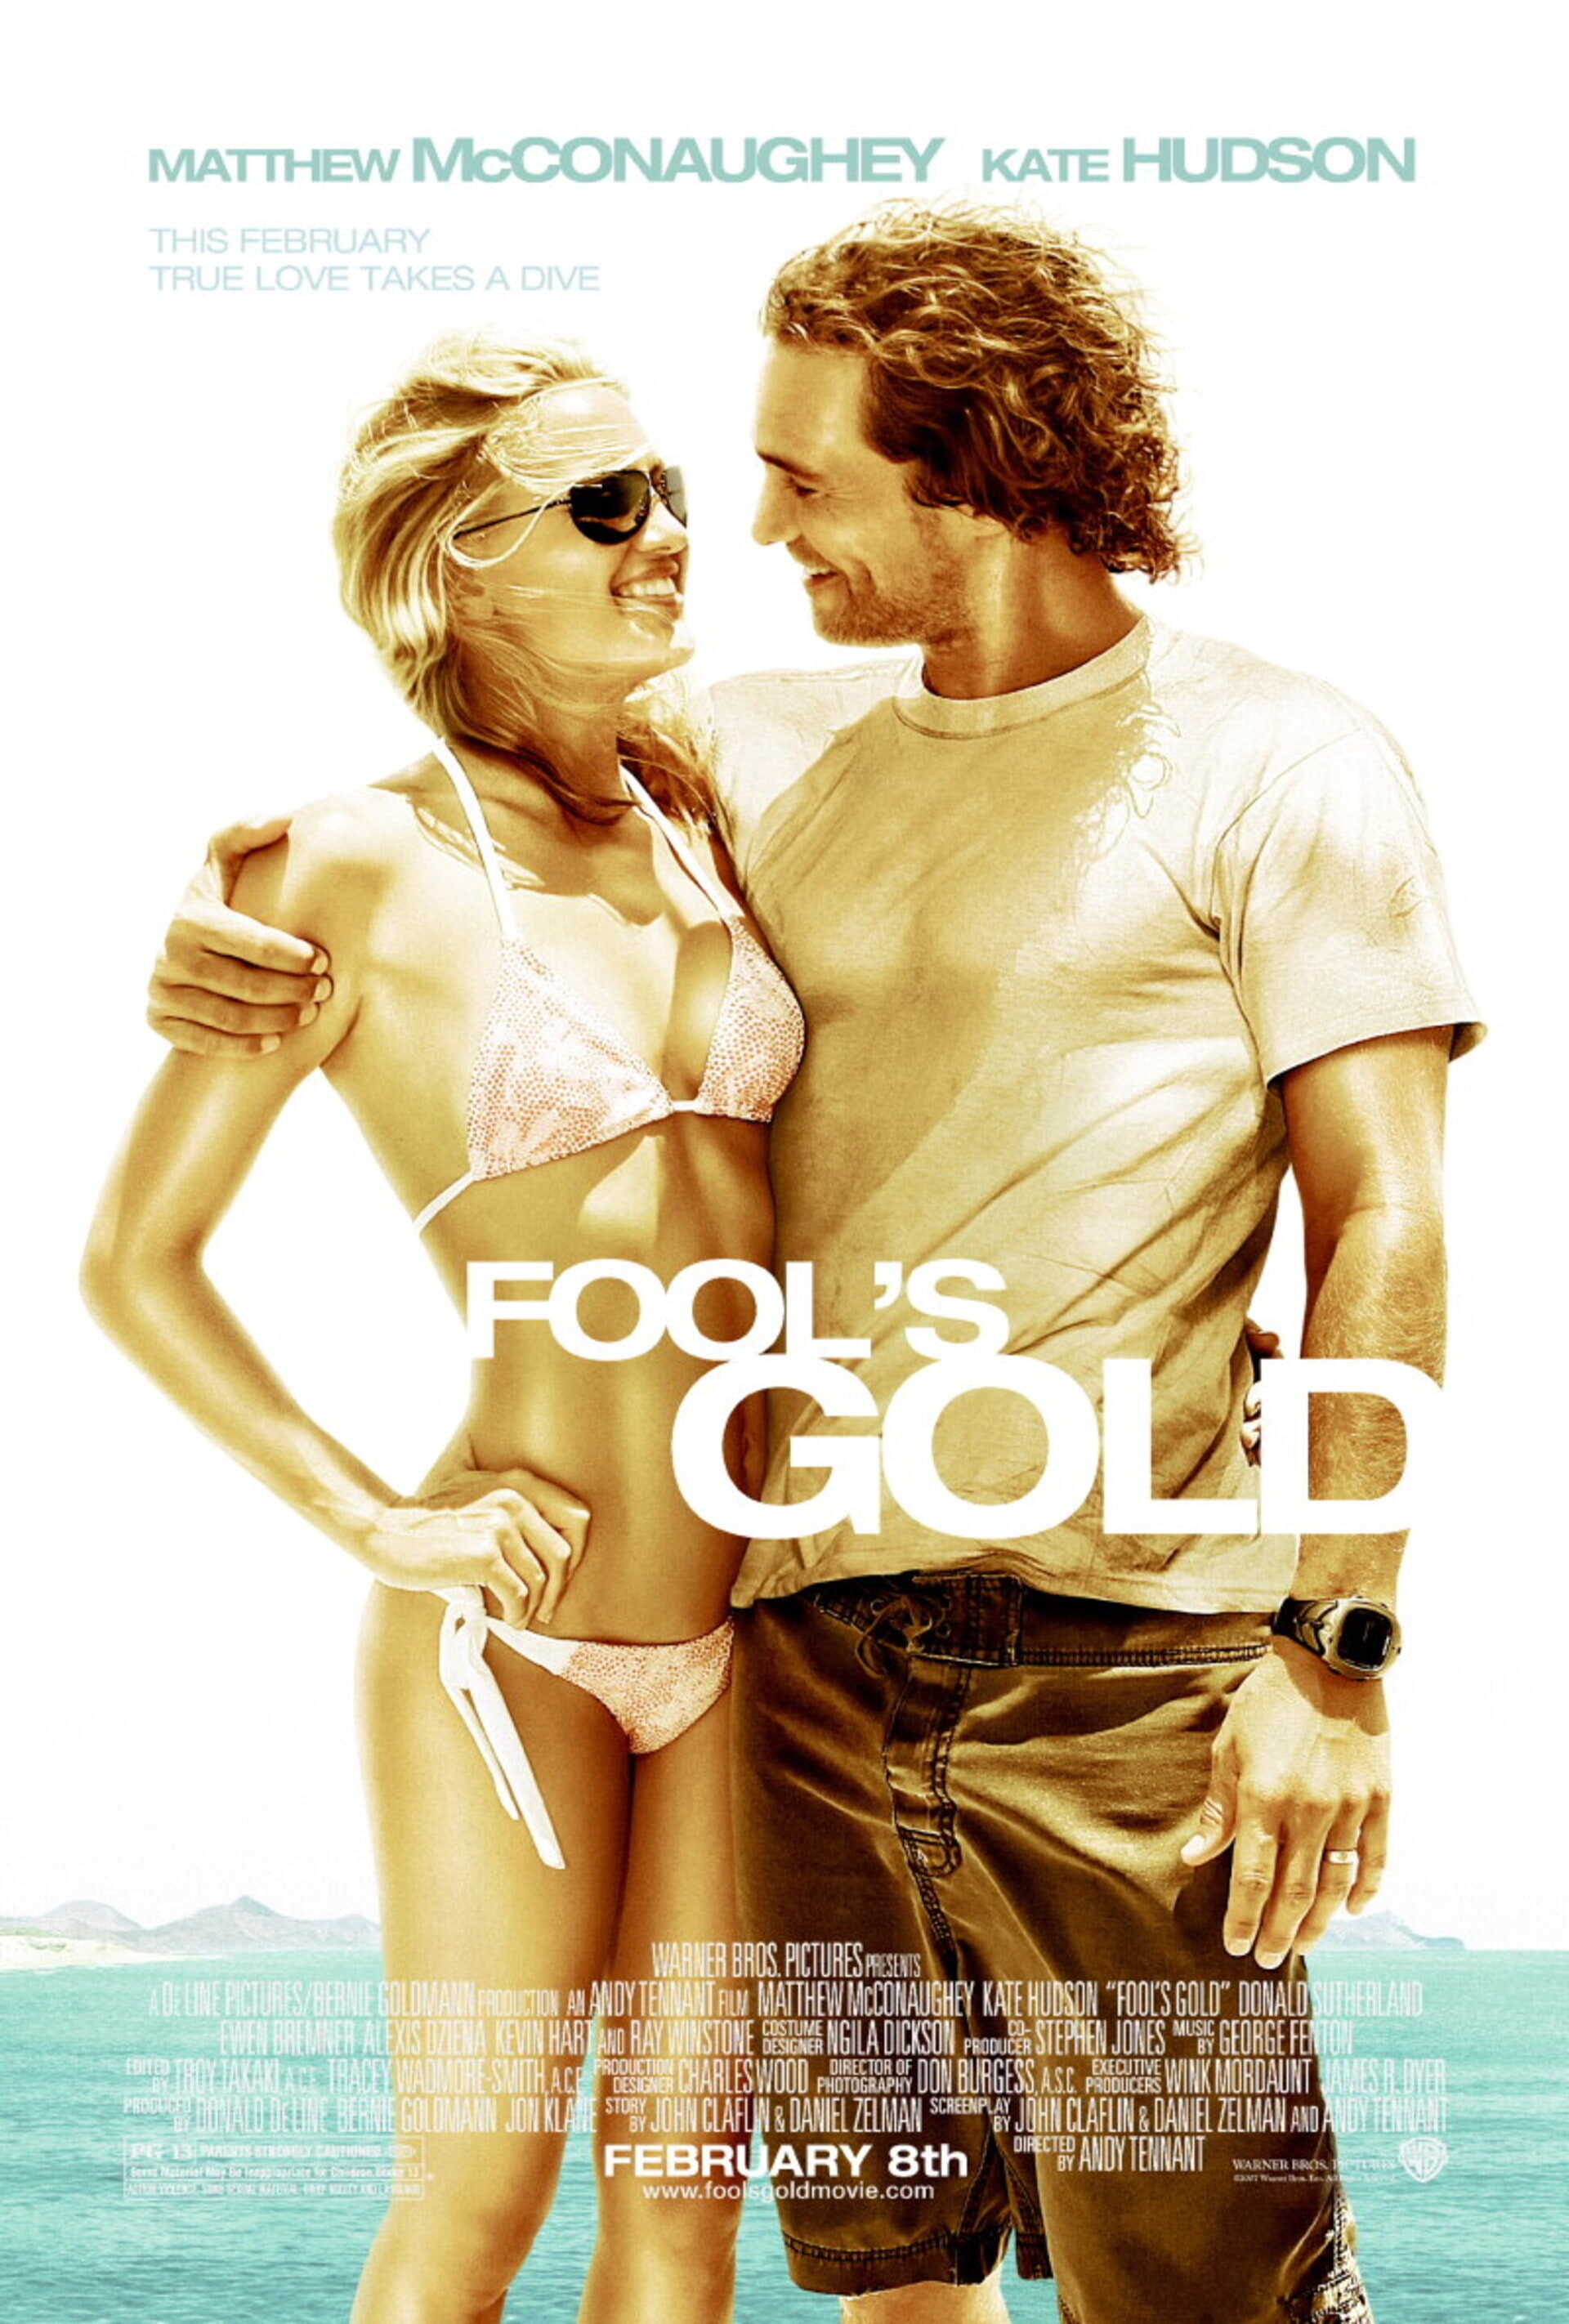 Fool's Gold - Poster 1